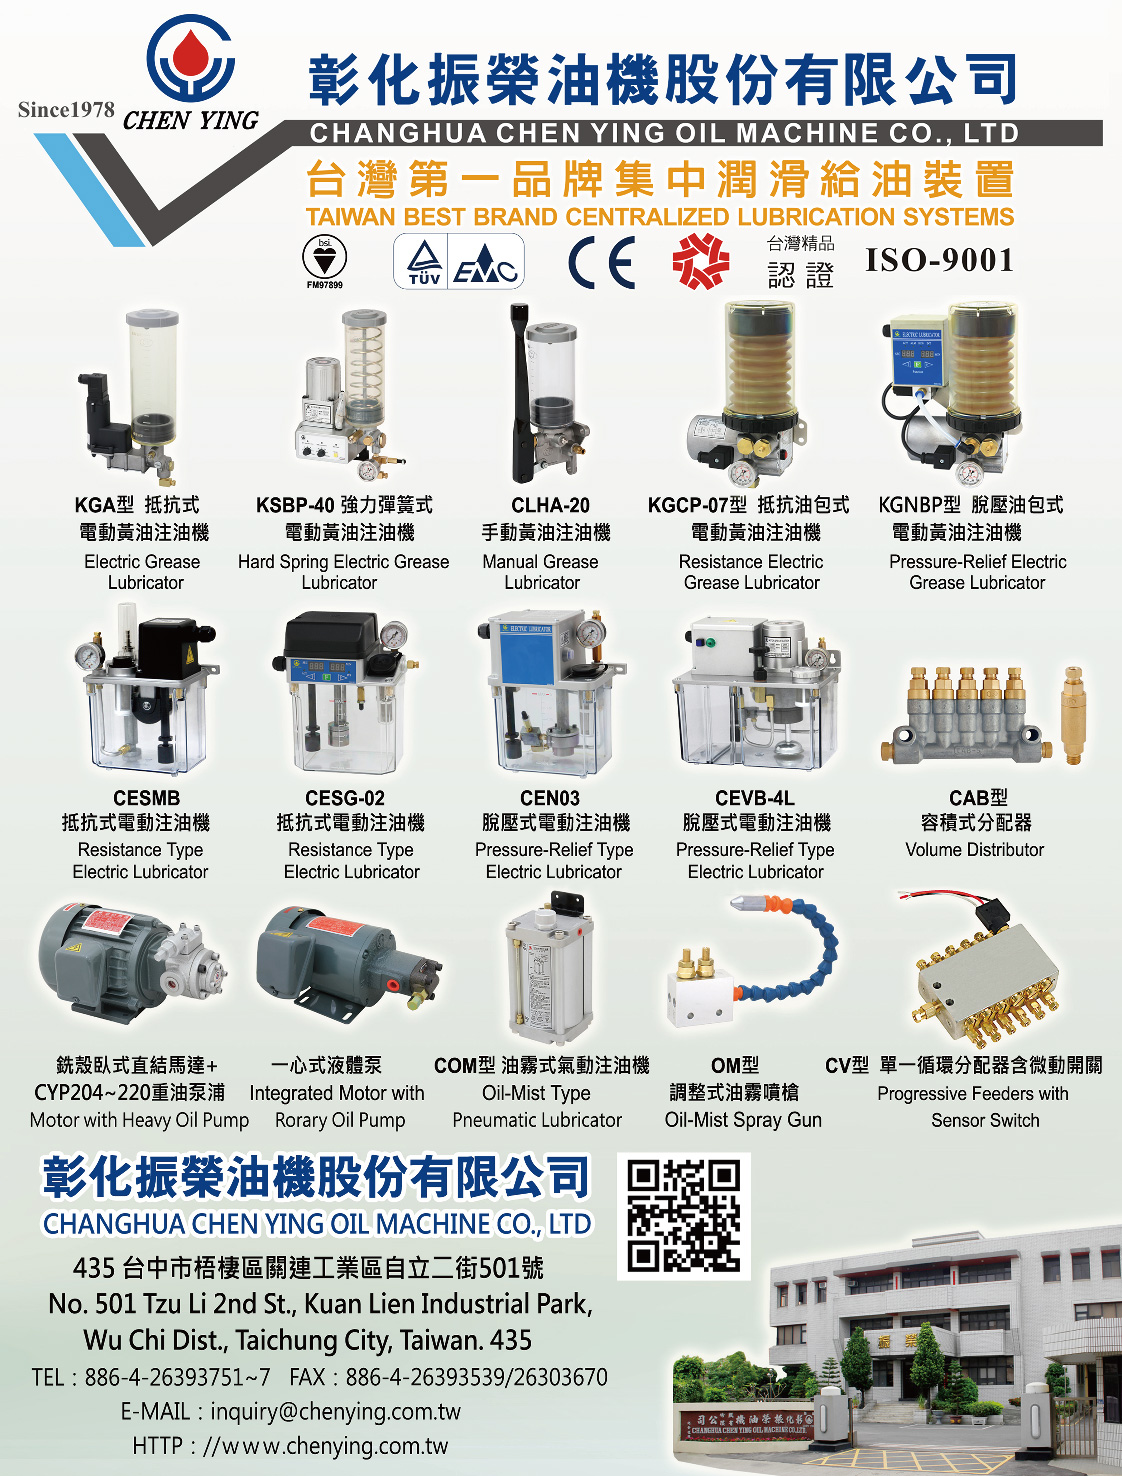 CHANGHUA CHEN YING OIL MACHINE CO., LTD.